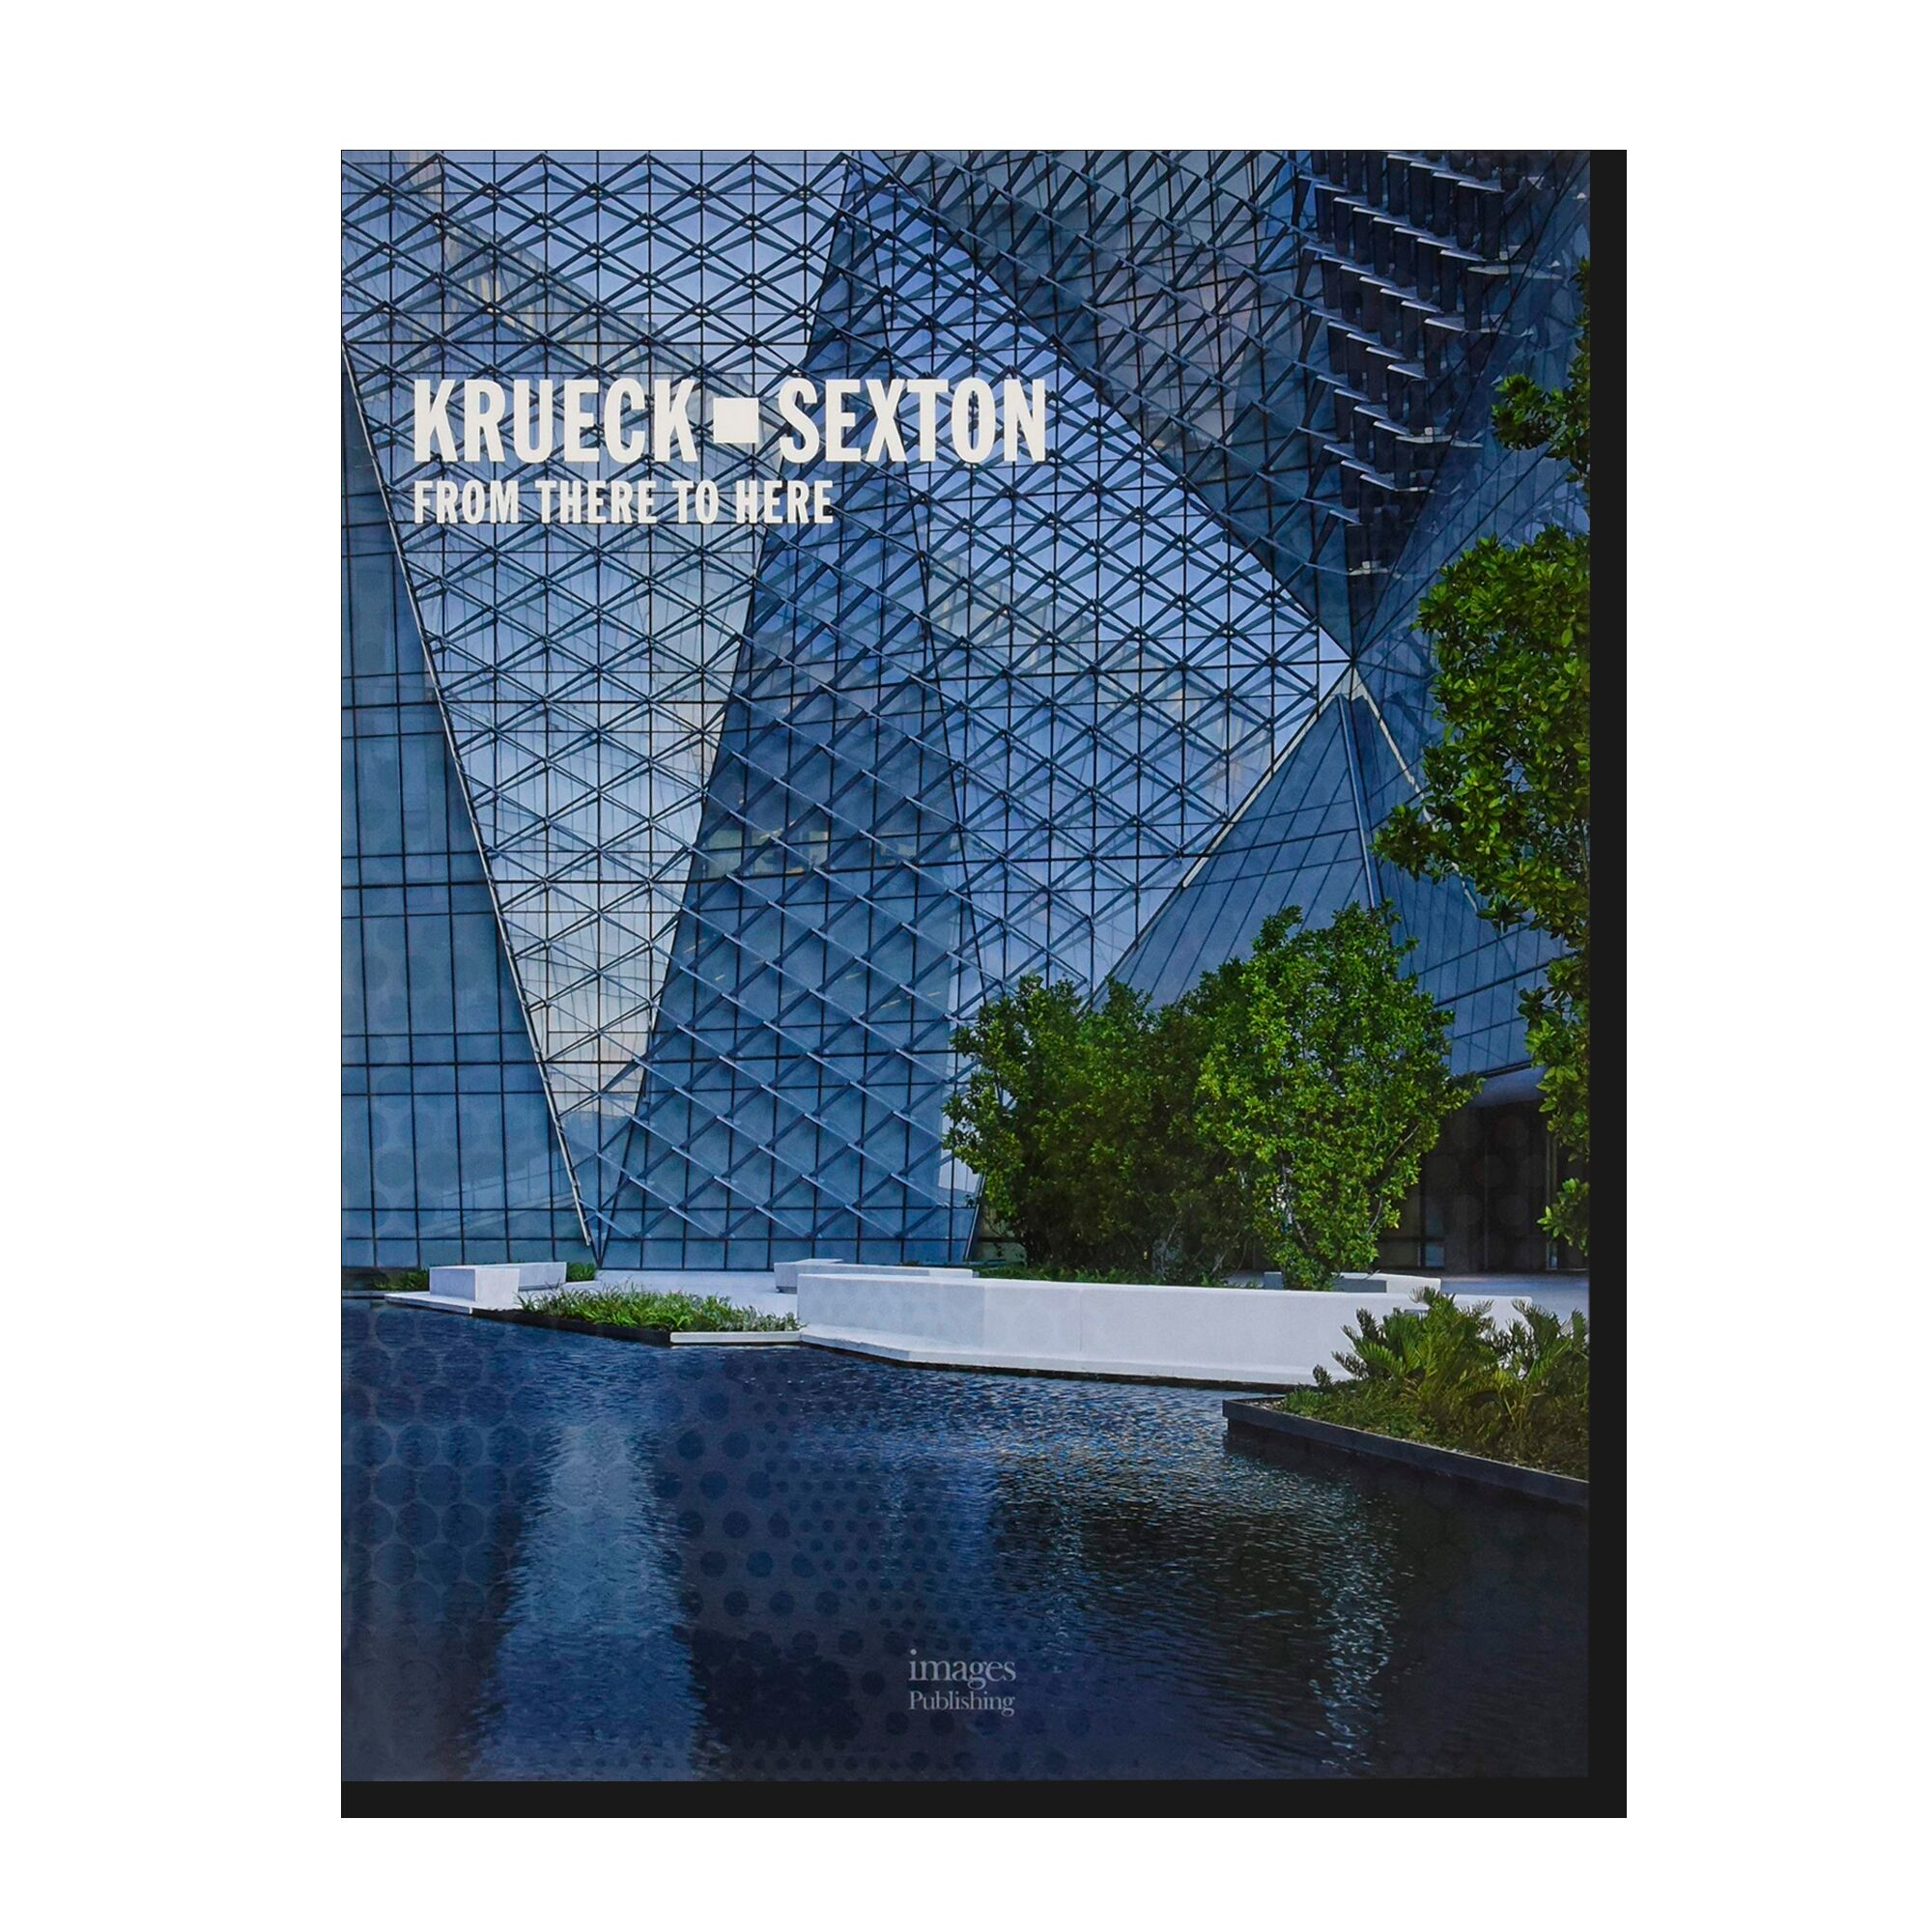 Krueck + Sexton: From There to Here